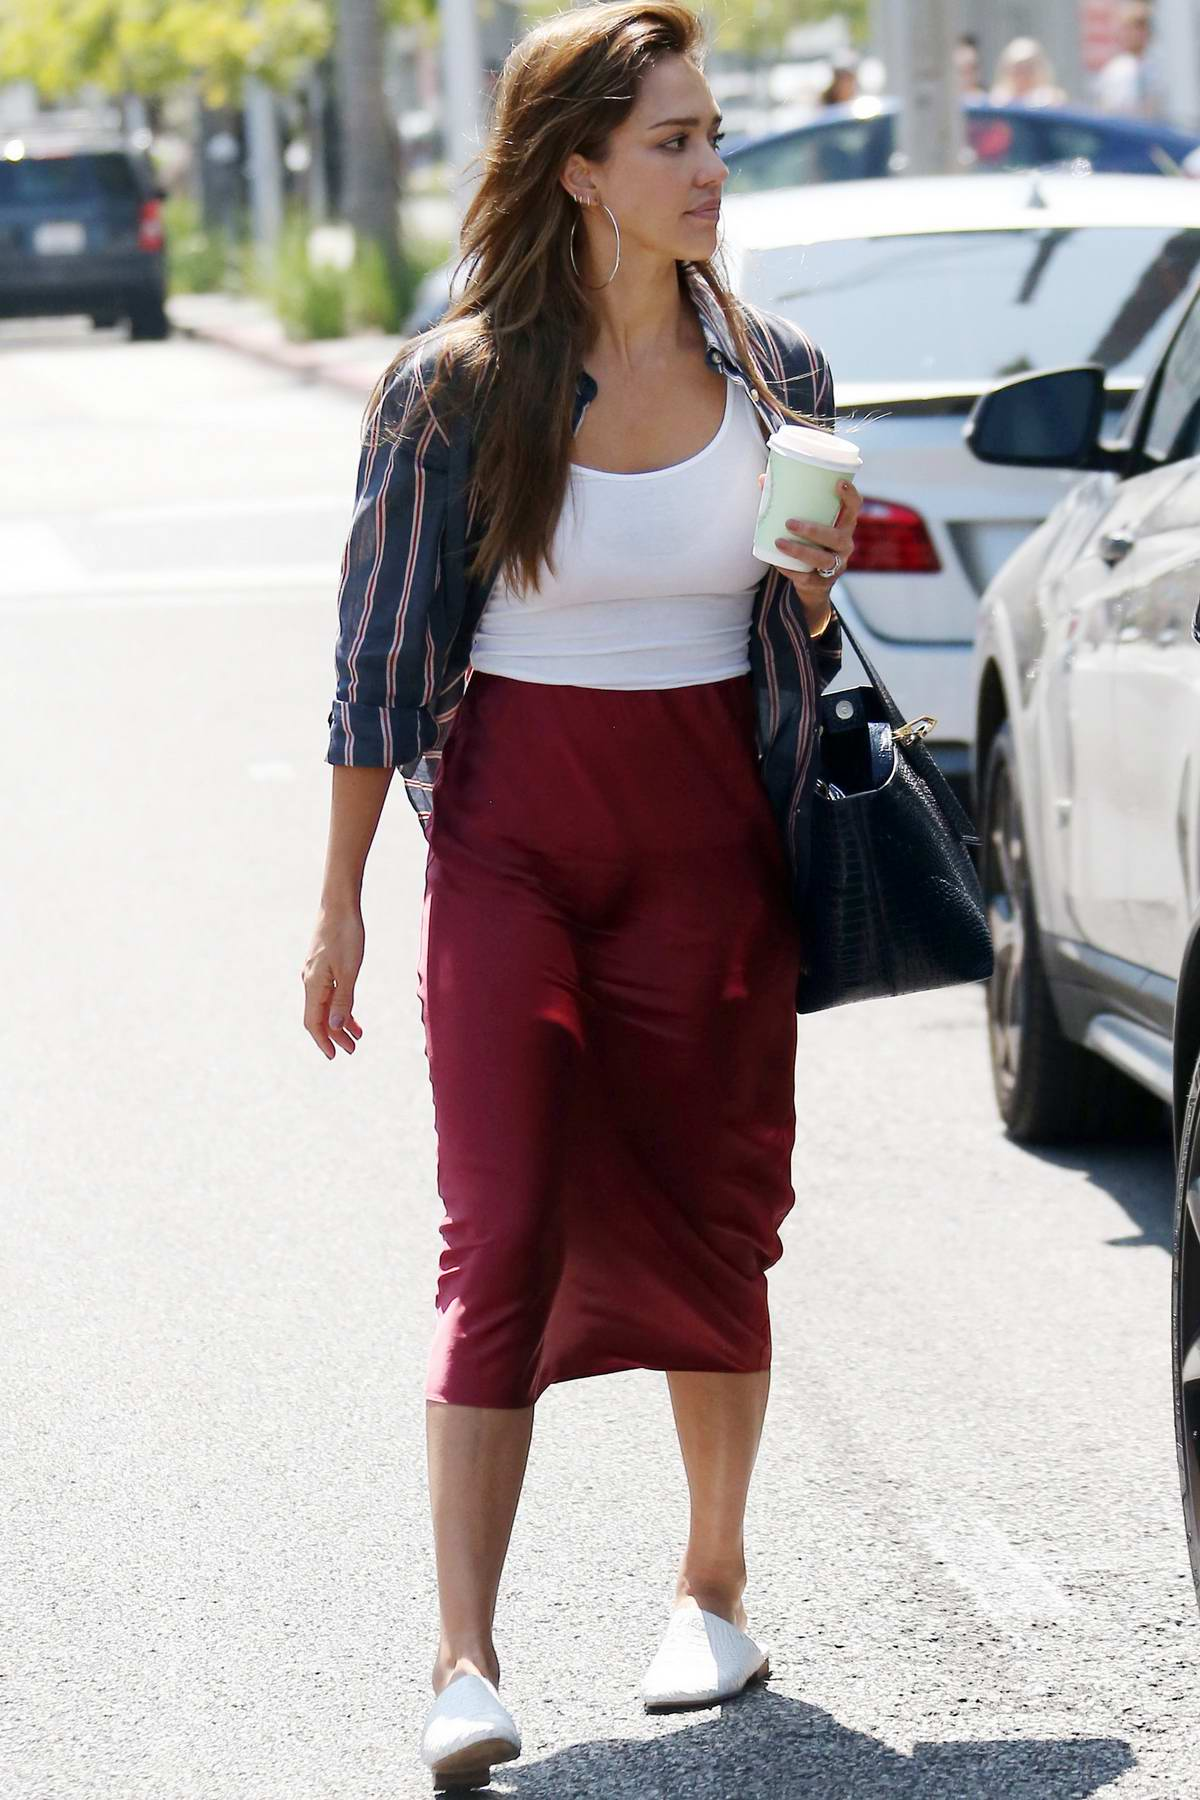 Jessica Alba looks lovely in a maroon silk skirt while out running errands in Beverly Hills, Los Angeles